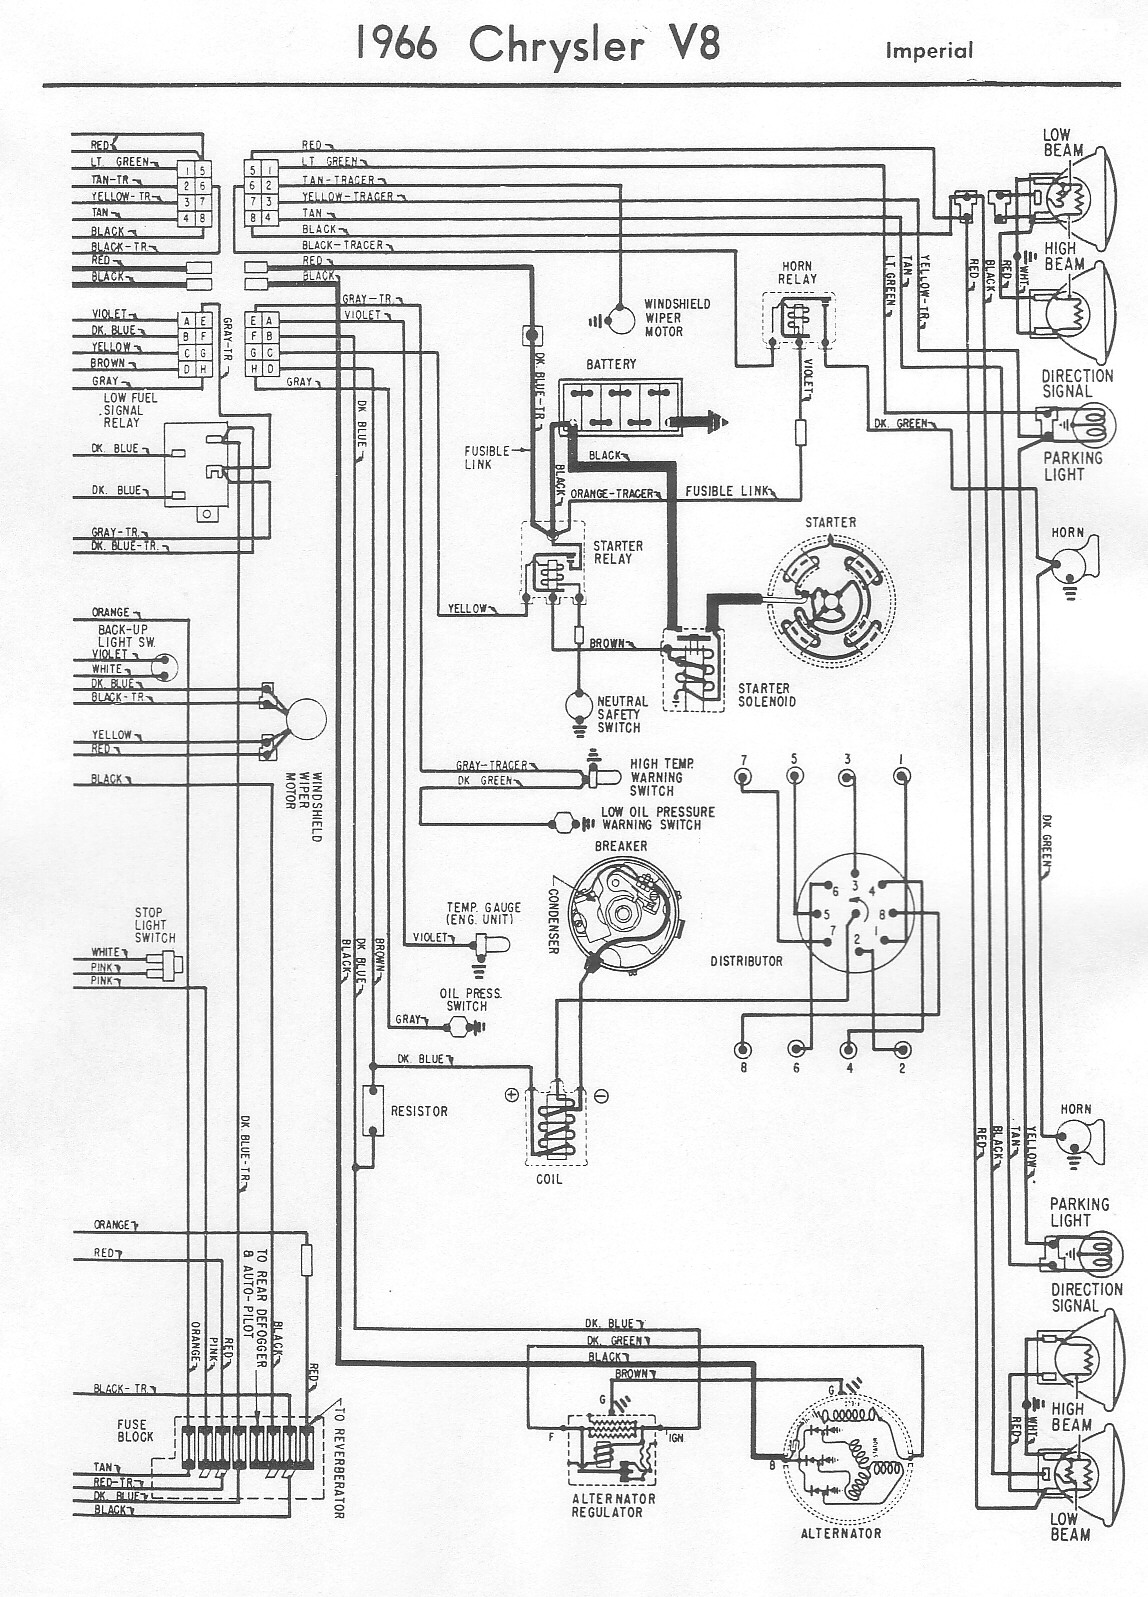 Imperial Pm Motor Wiring Diagram